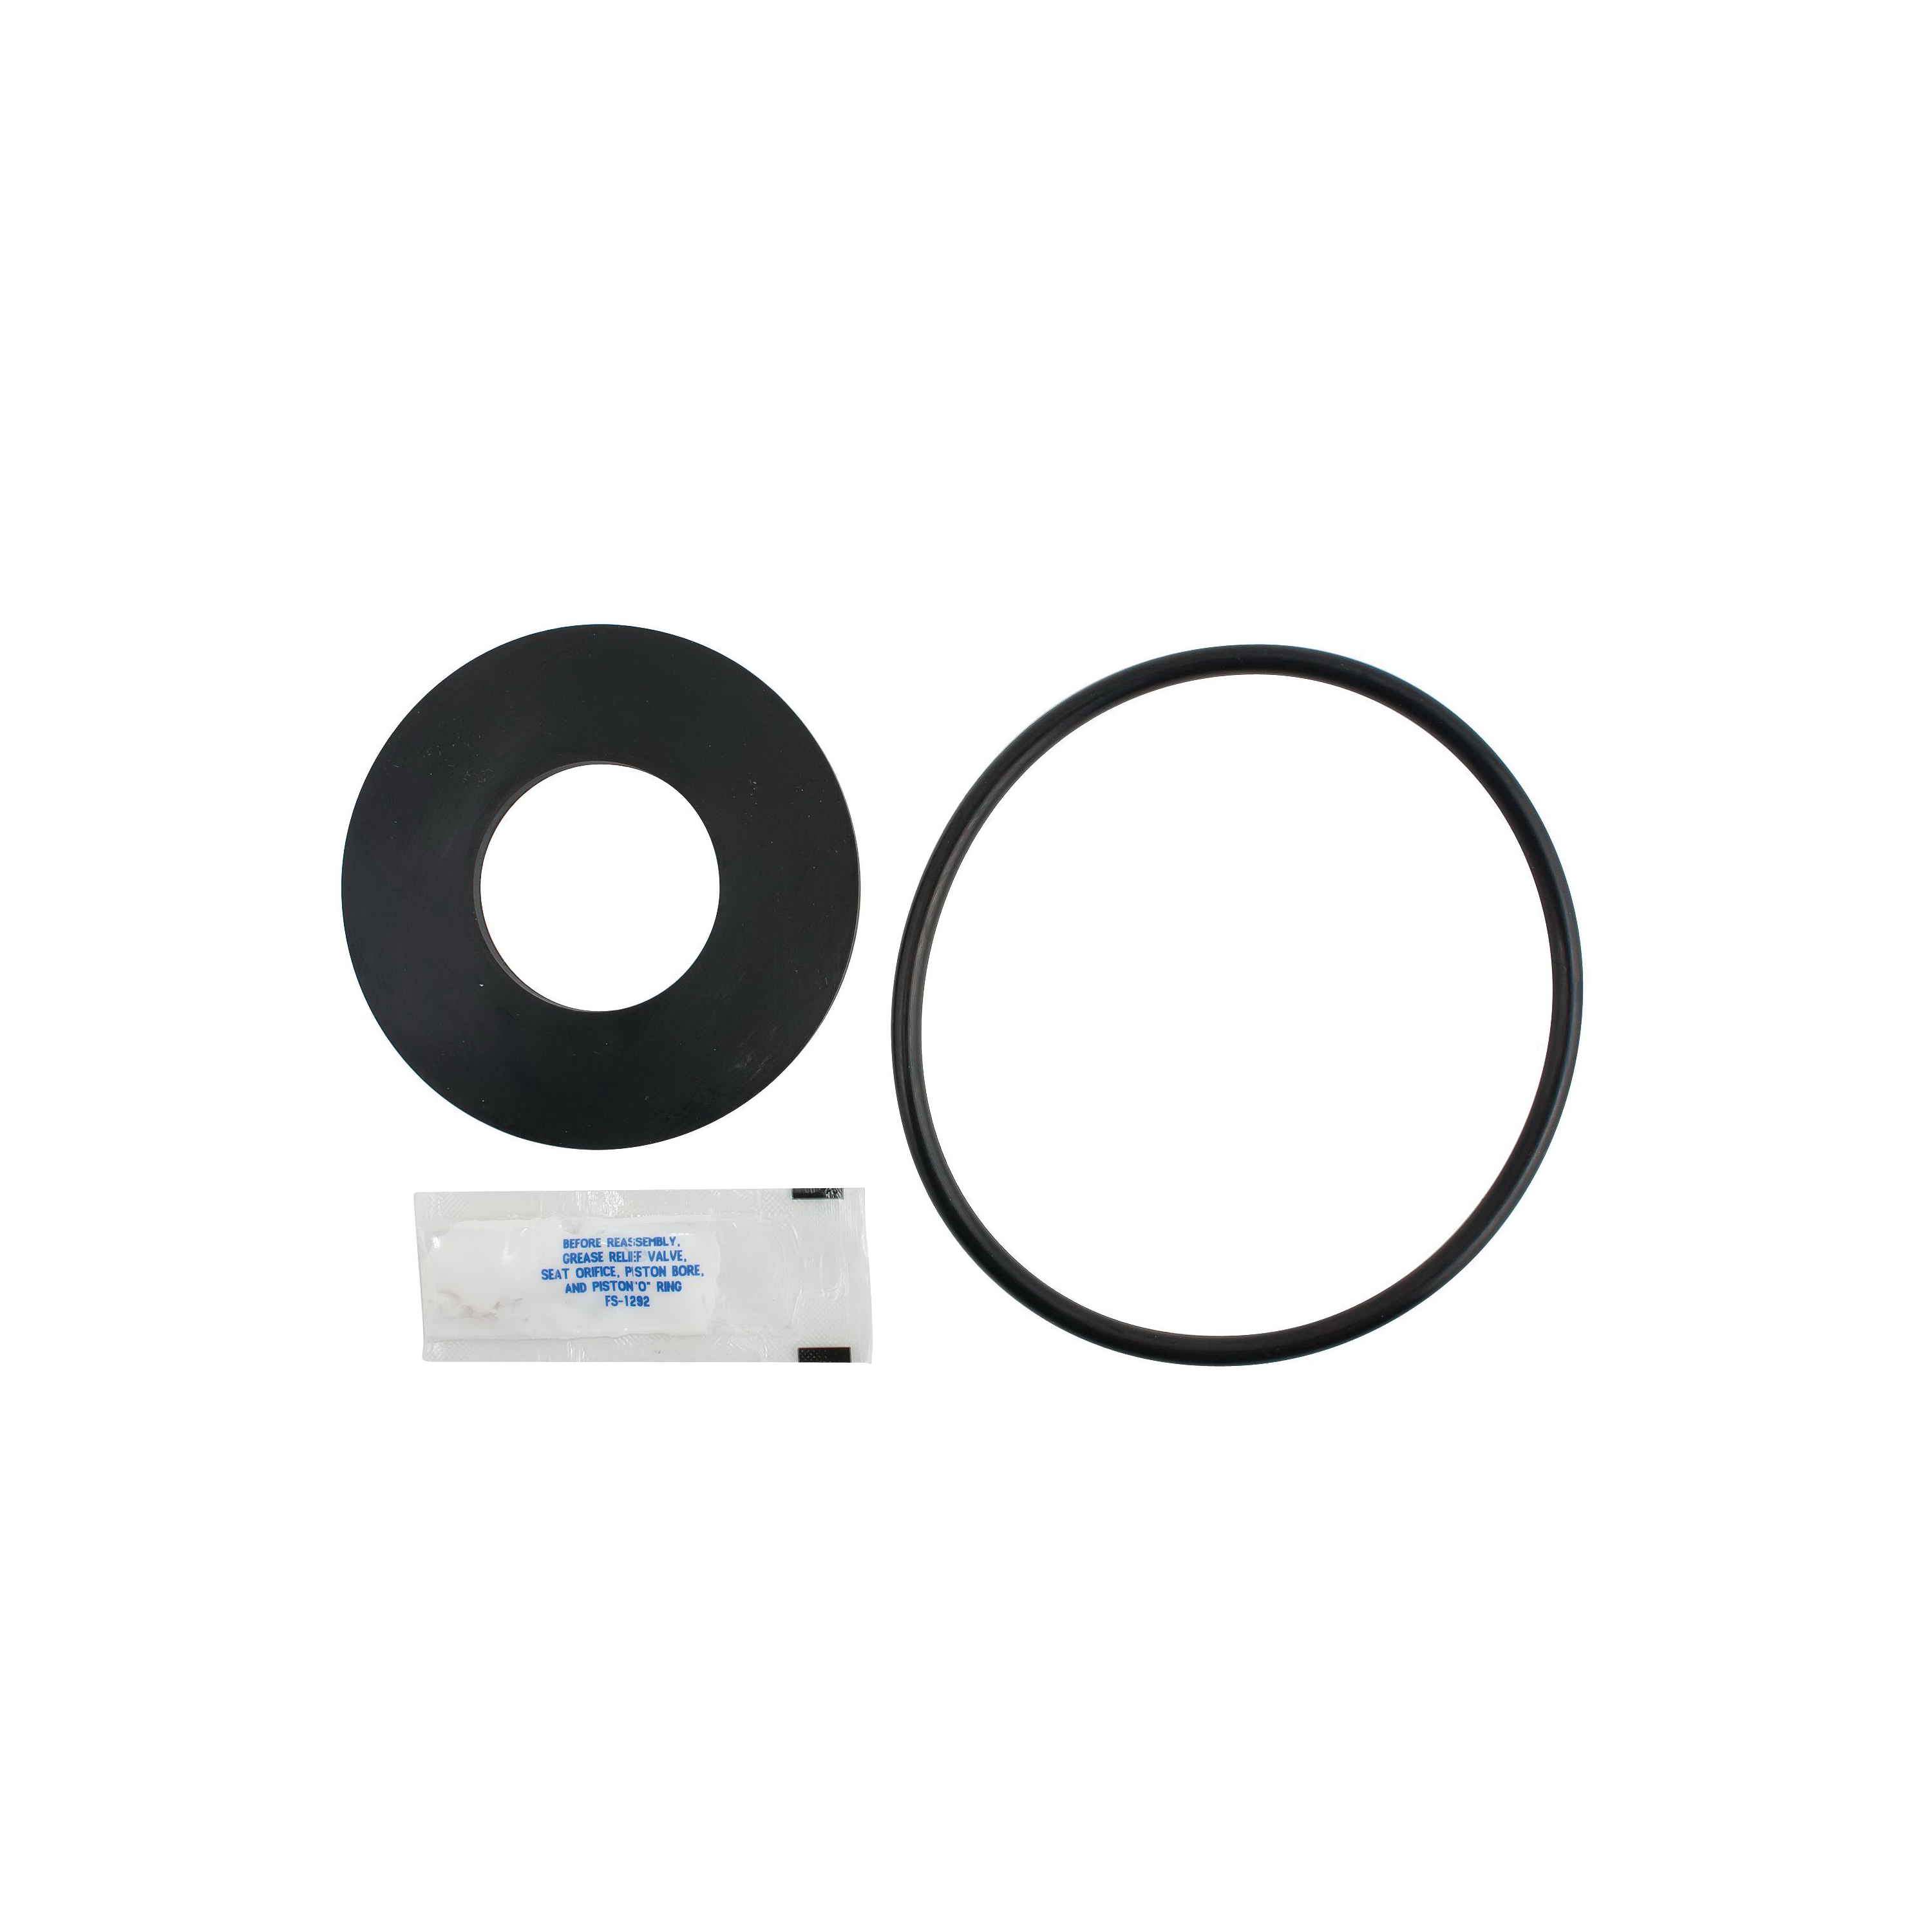 WATTS® 0887226 RK 909-RC2 Second Check Rubber Parts Kit, For Use With LF909 and 909 2-1/2 to 3 in Reduced Pressure Zone Assembly